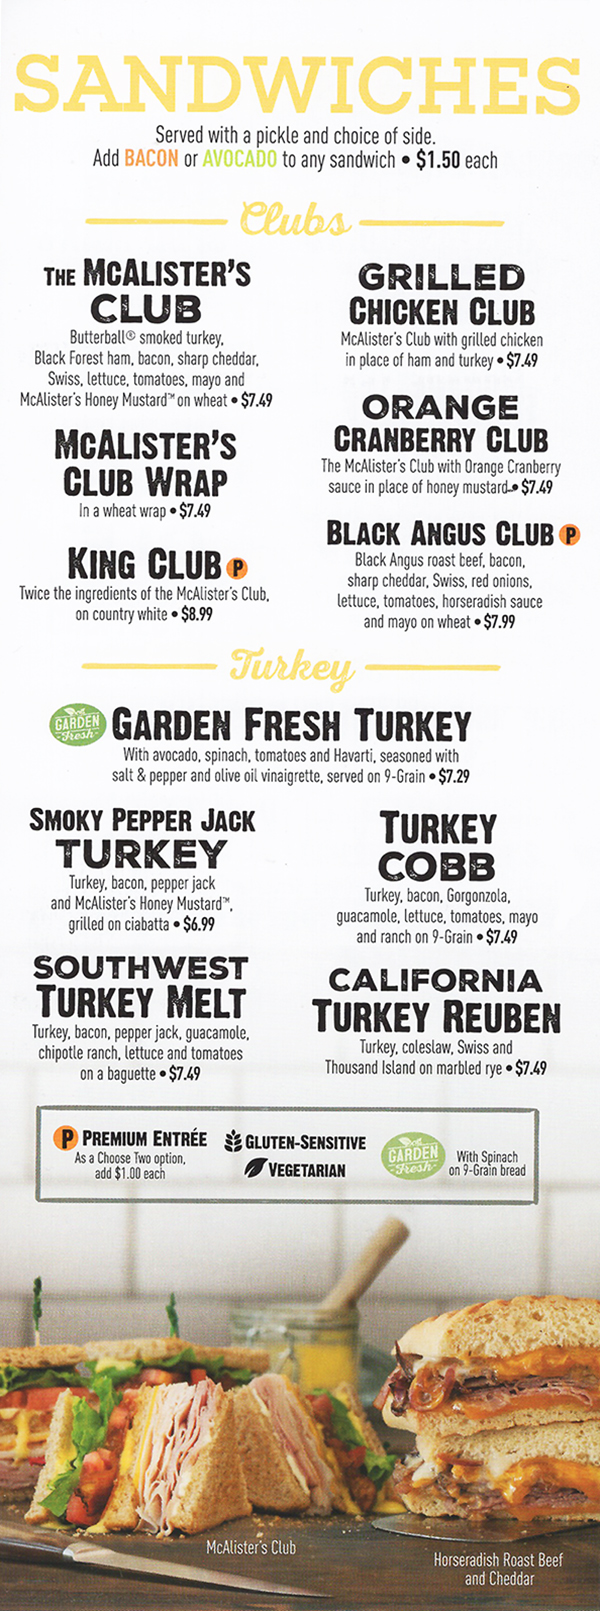 Canny image with regard to mcalisters deli printable menu